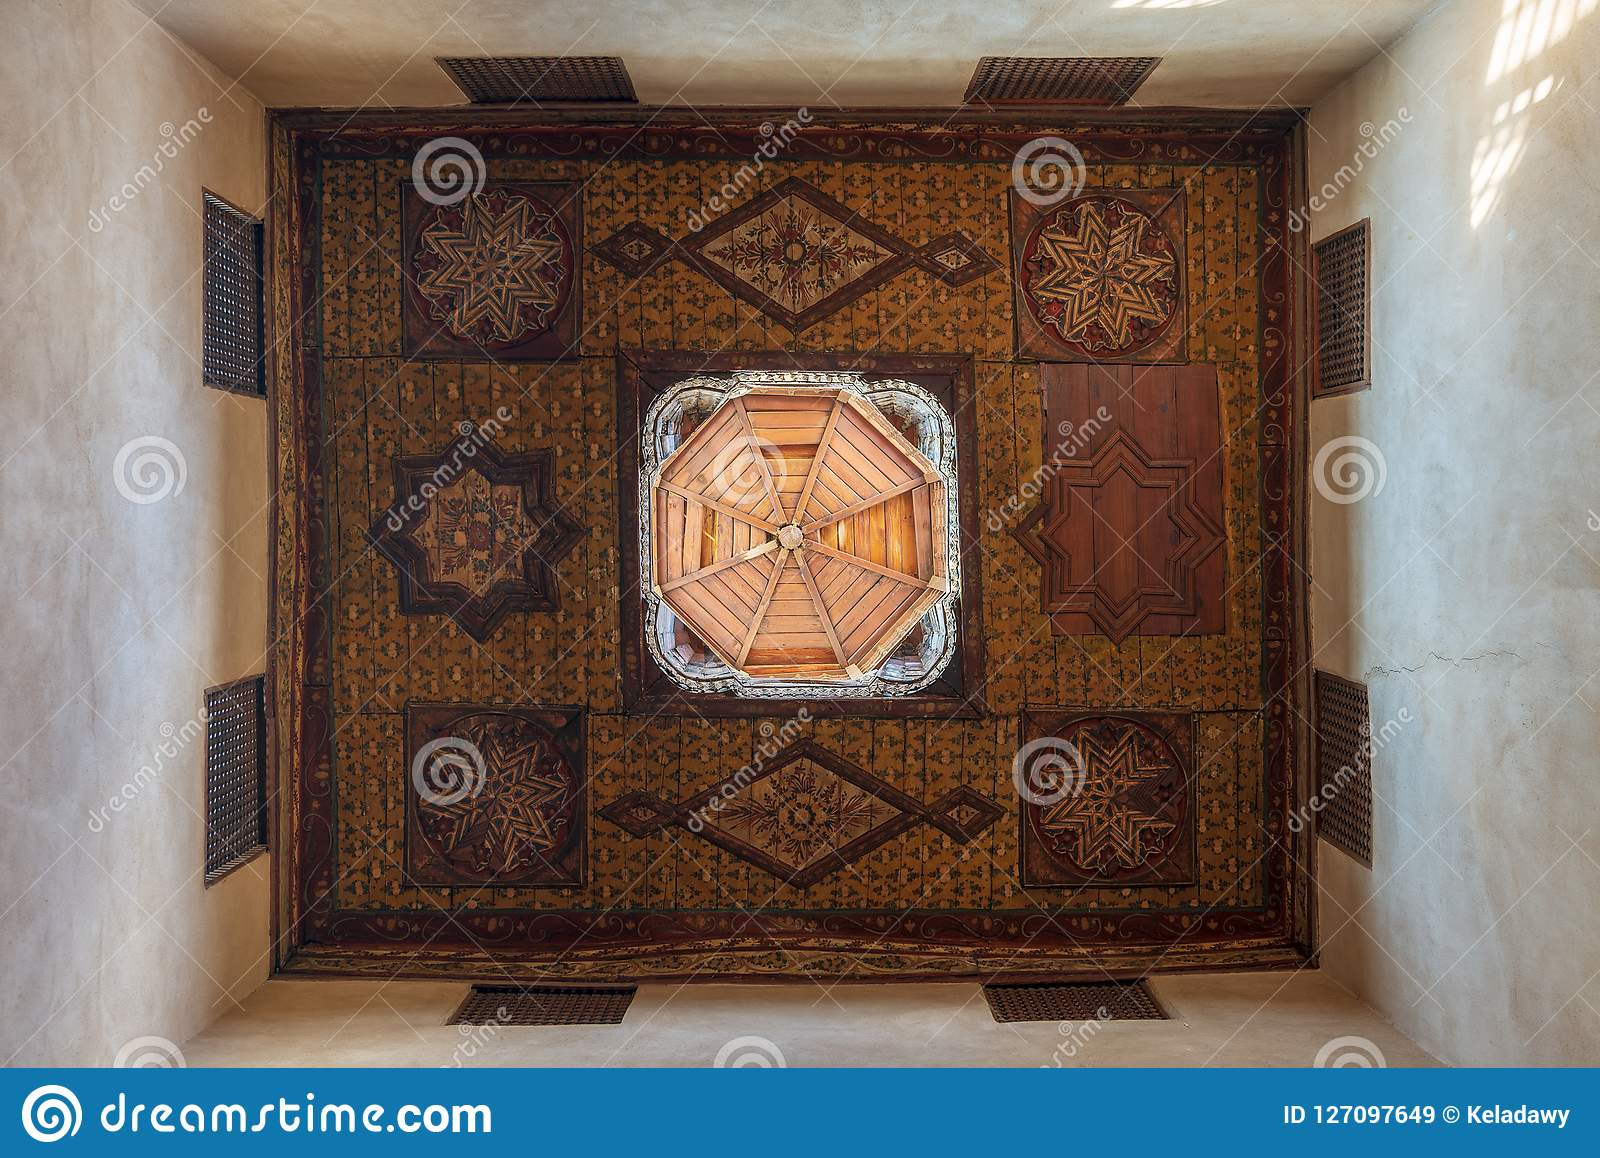 Ottoman era decorated wooden ceiling with floral pattern decorations and wooden dome, Cairo, Egypt